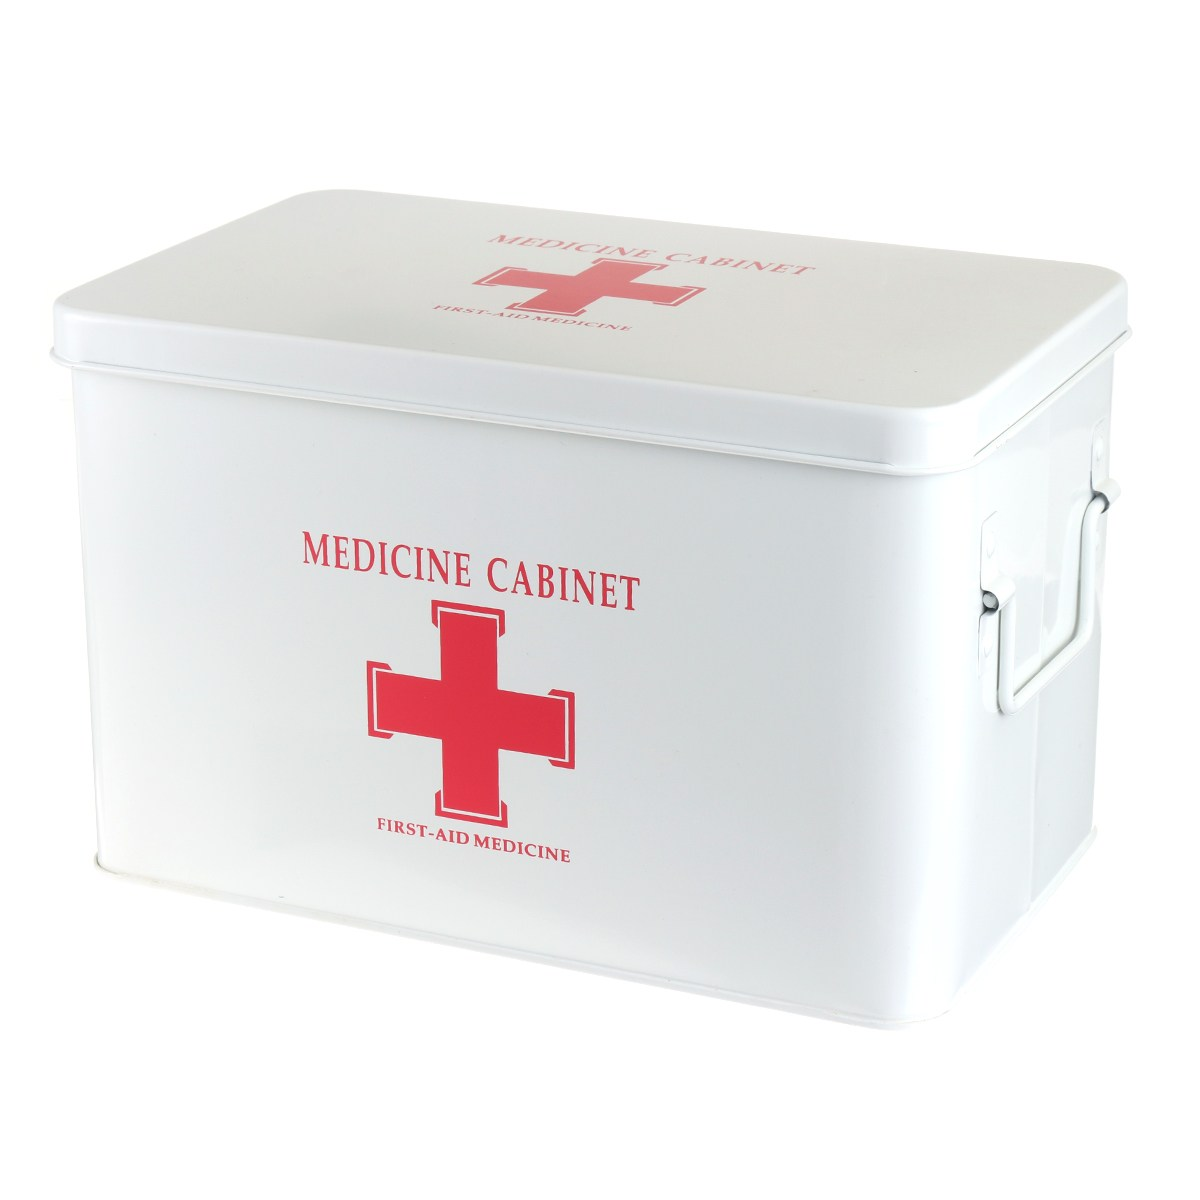 NEW Safurance Metal Medicine Cabinet Multi-layered Family Box First Aid Storage Box Storage Medical Gathering Emergency Kits new gbj free shipping home aluminum medical cabinet multi layer medical treatment first aid kit medicine storage portable